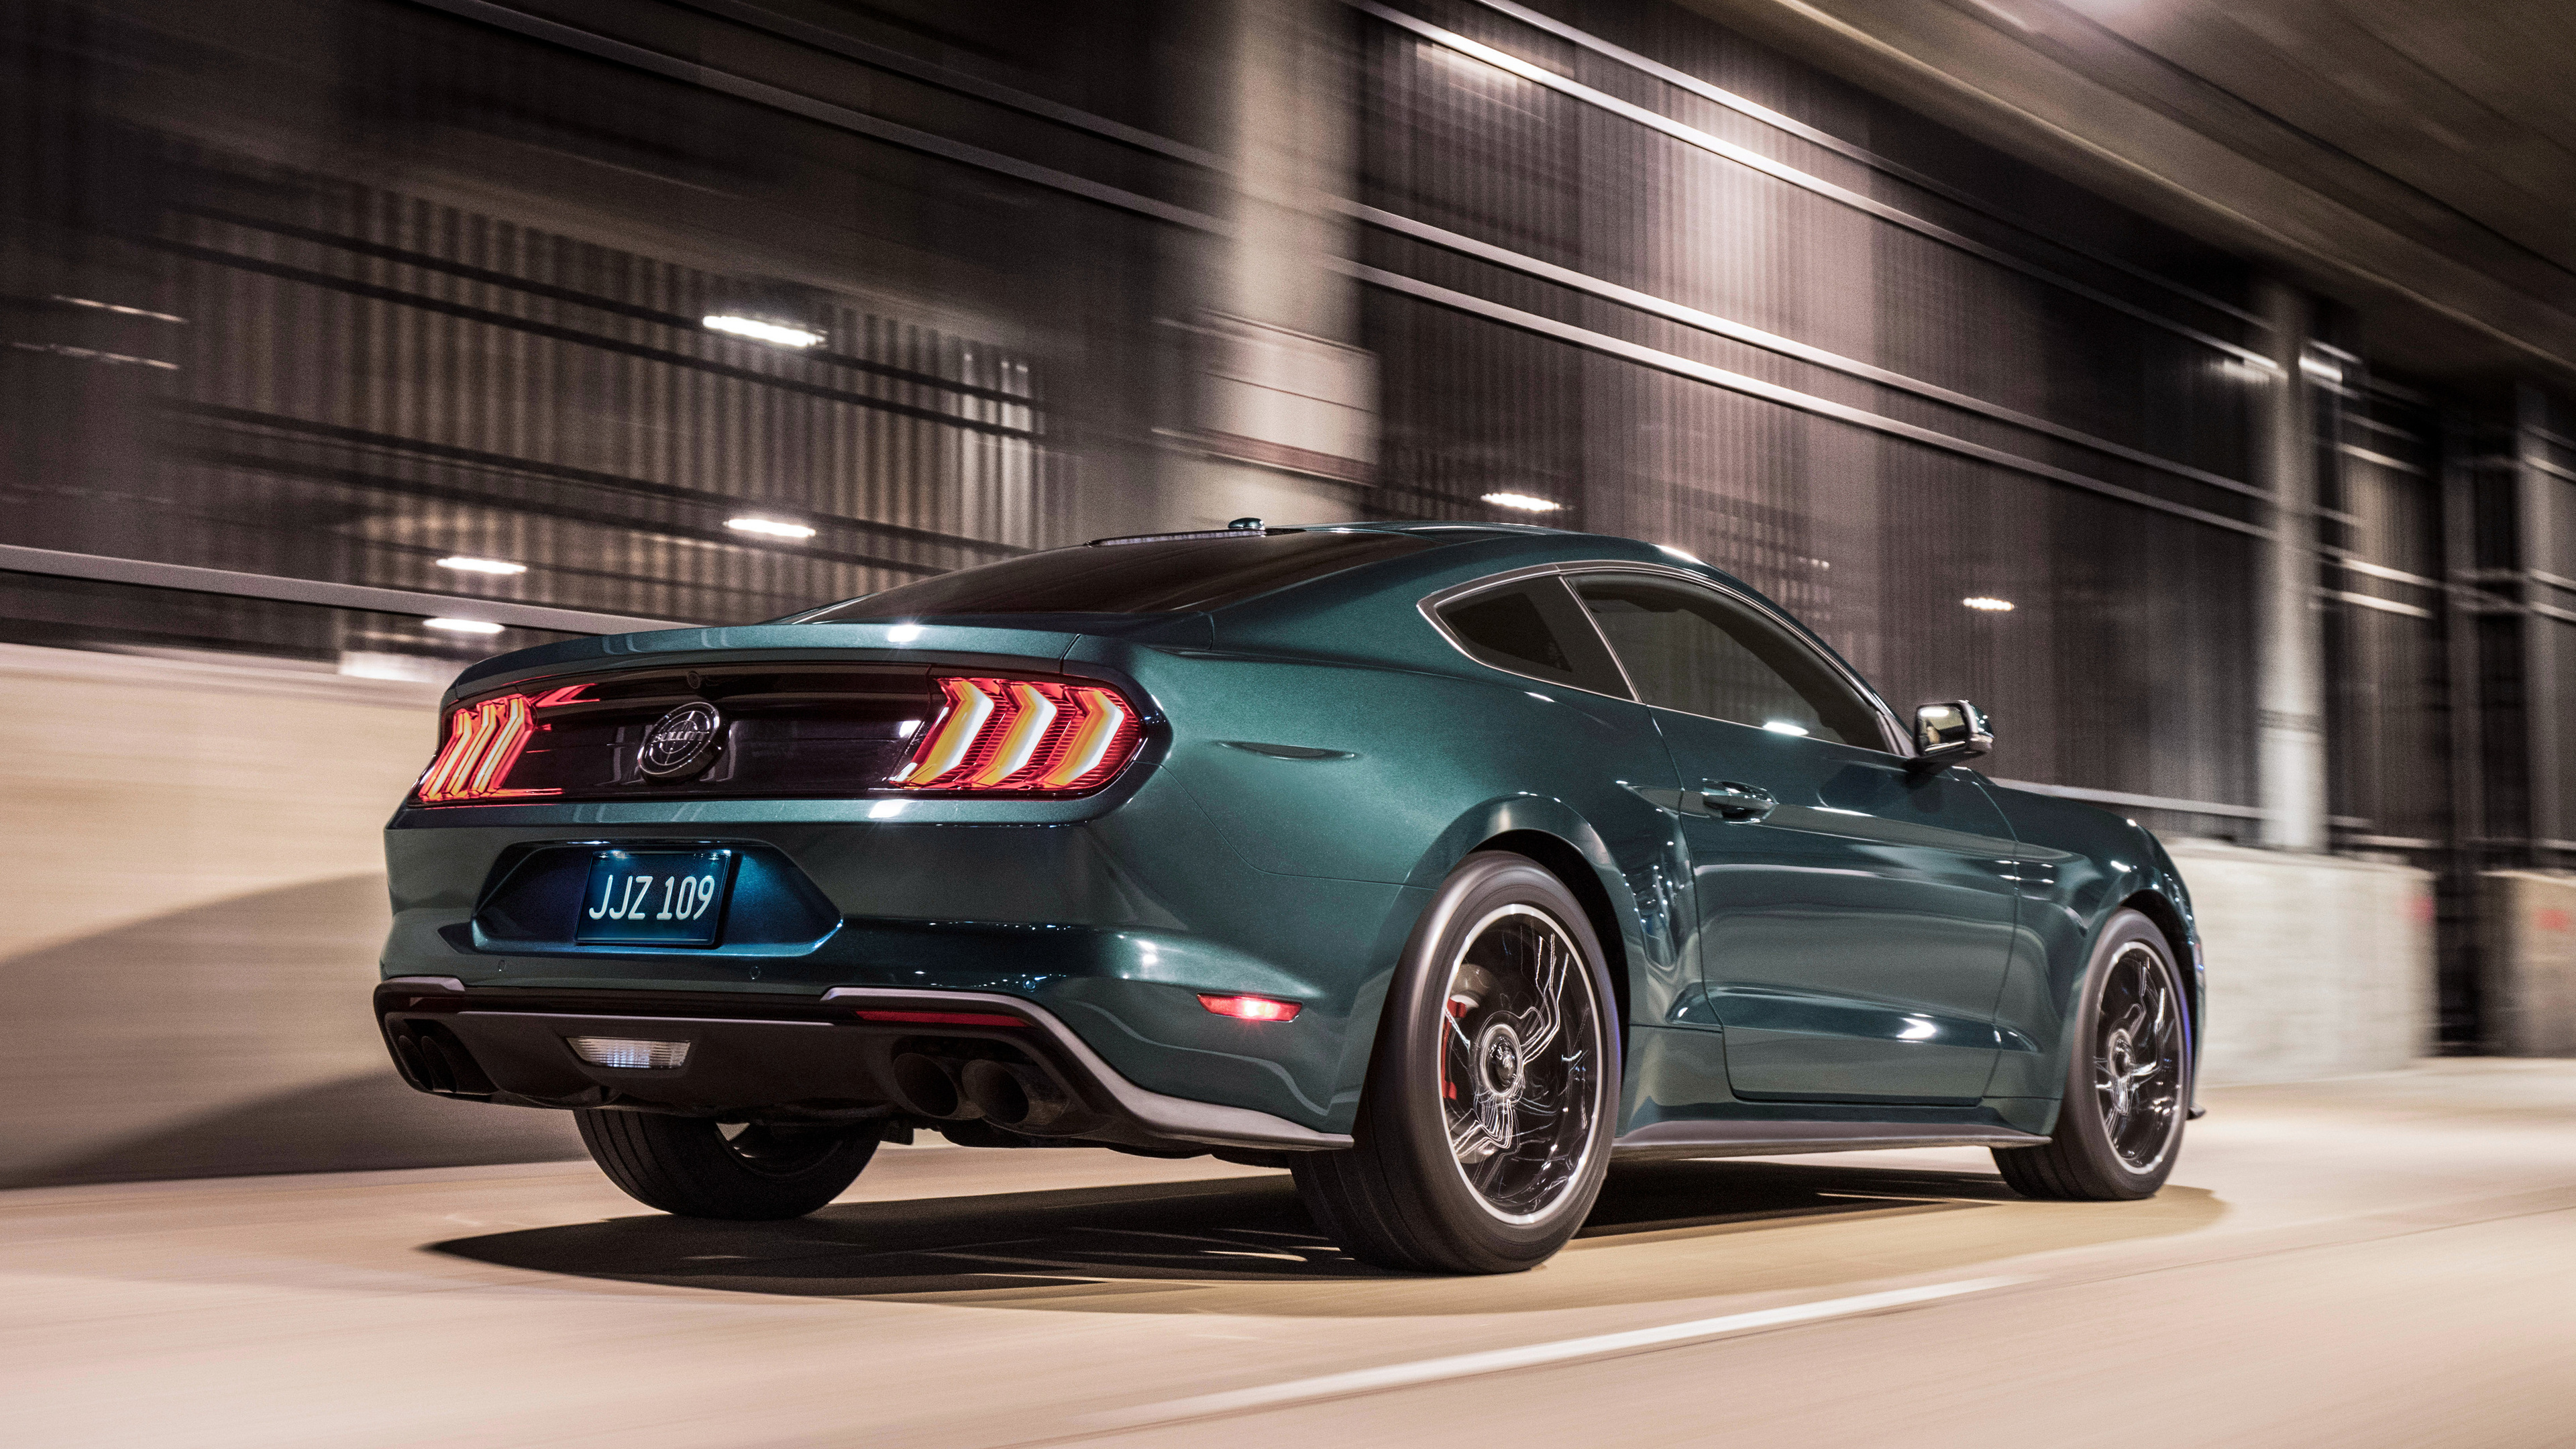 2019 ford mustang bullitt rear 4k 1539109187 - 2019 Ford Mustang Bullitt Rear 4k - mustang wallpapers, hd-wallpapers, ford mustang wallpapers, ford mustang bullitt wallpapers, cars wallpapers, 4k-wallpapers, 2019 cars wallpapers